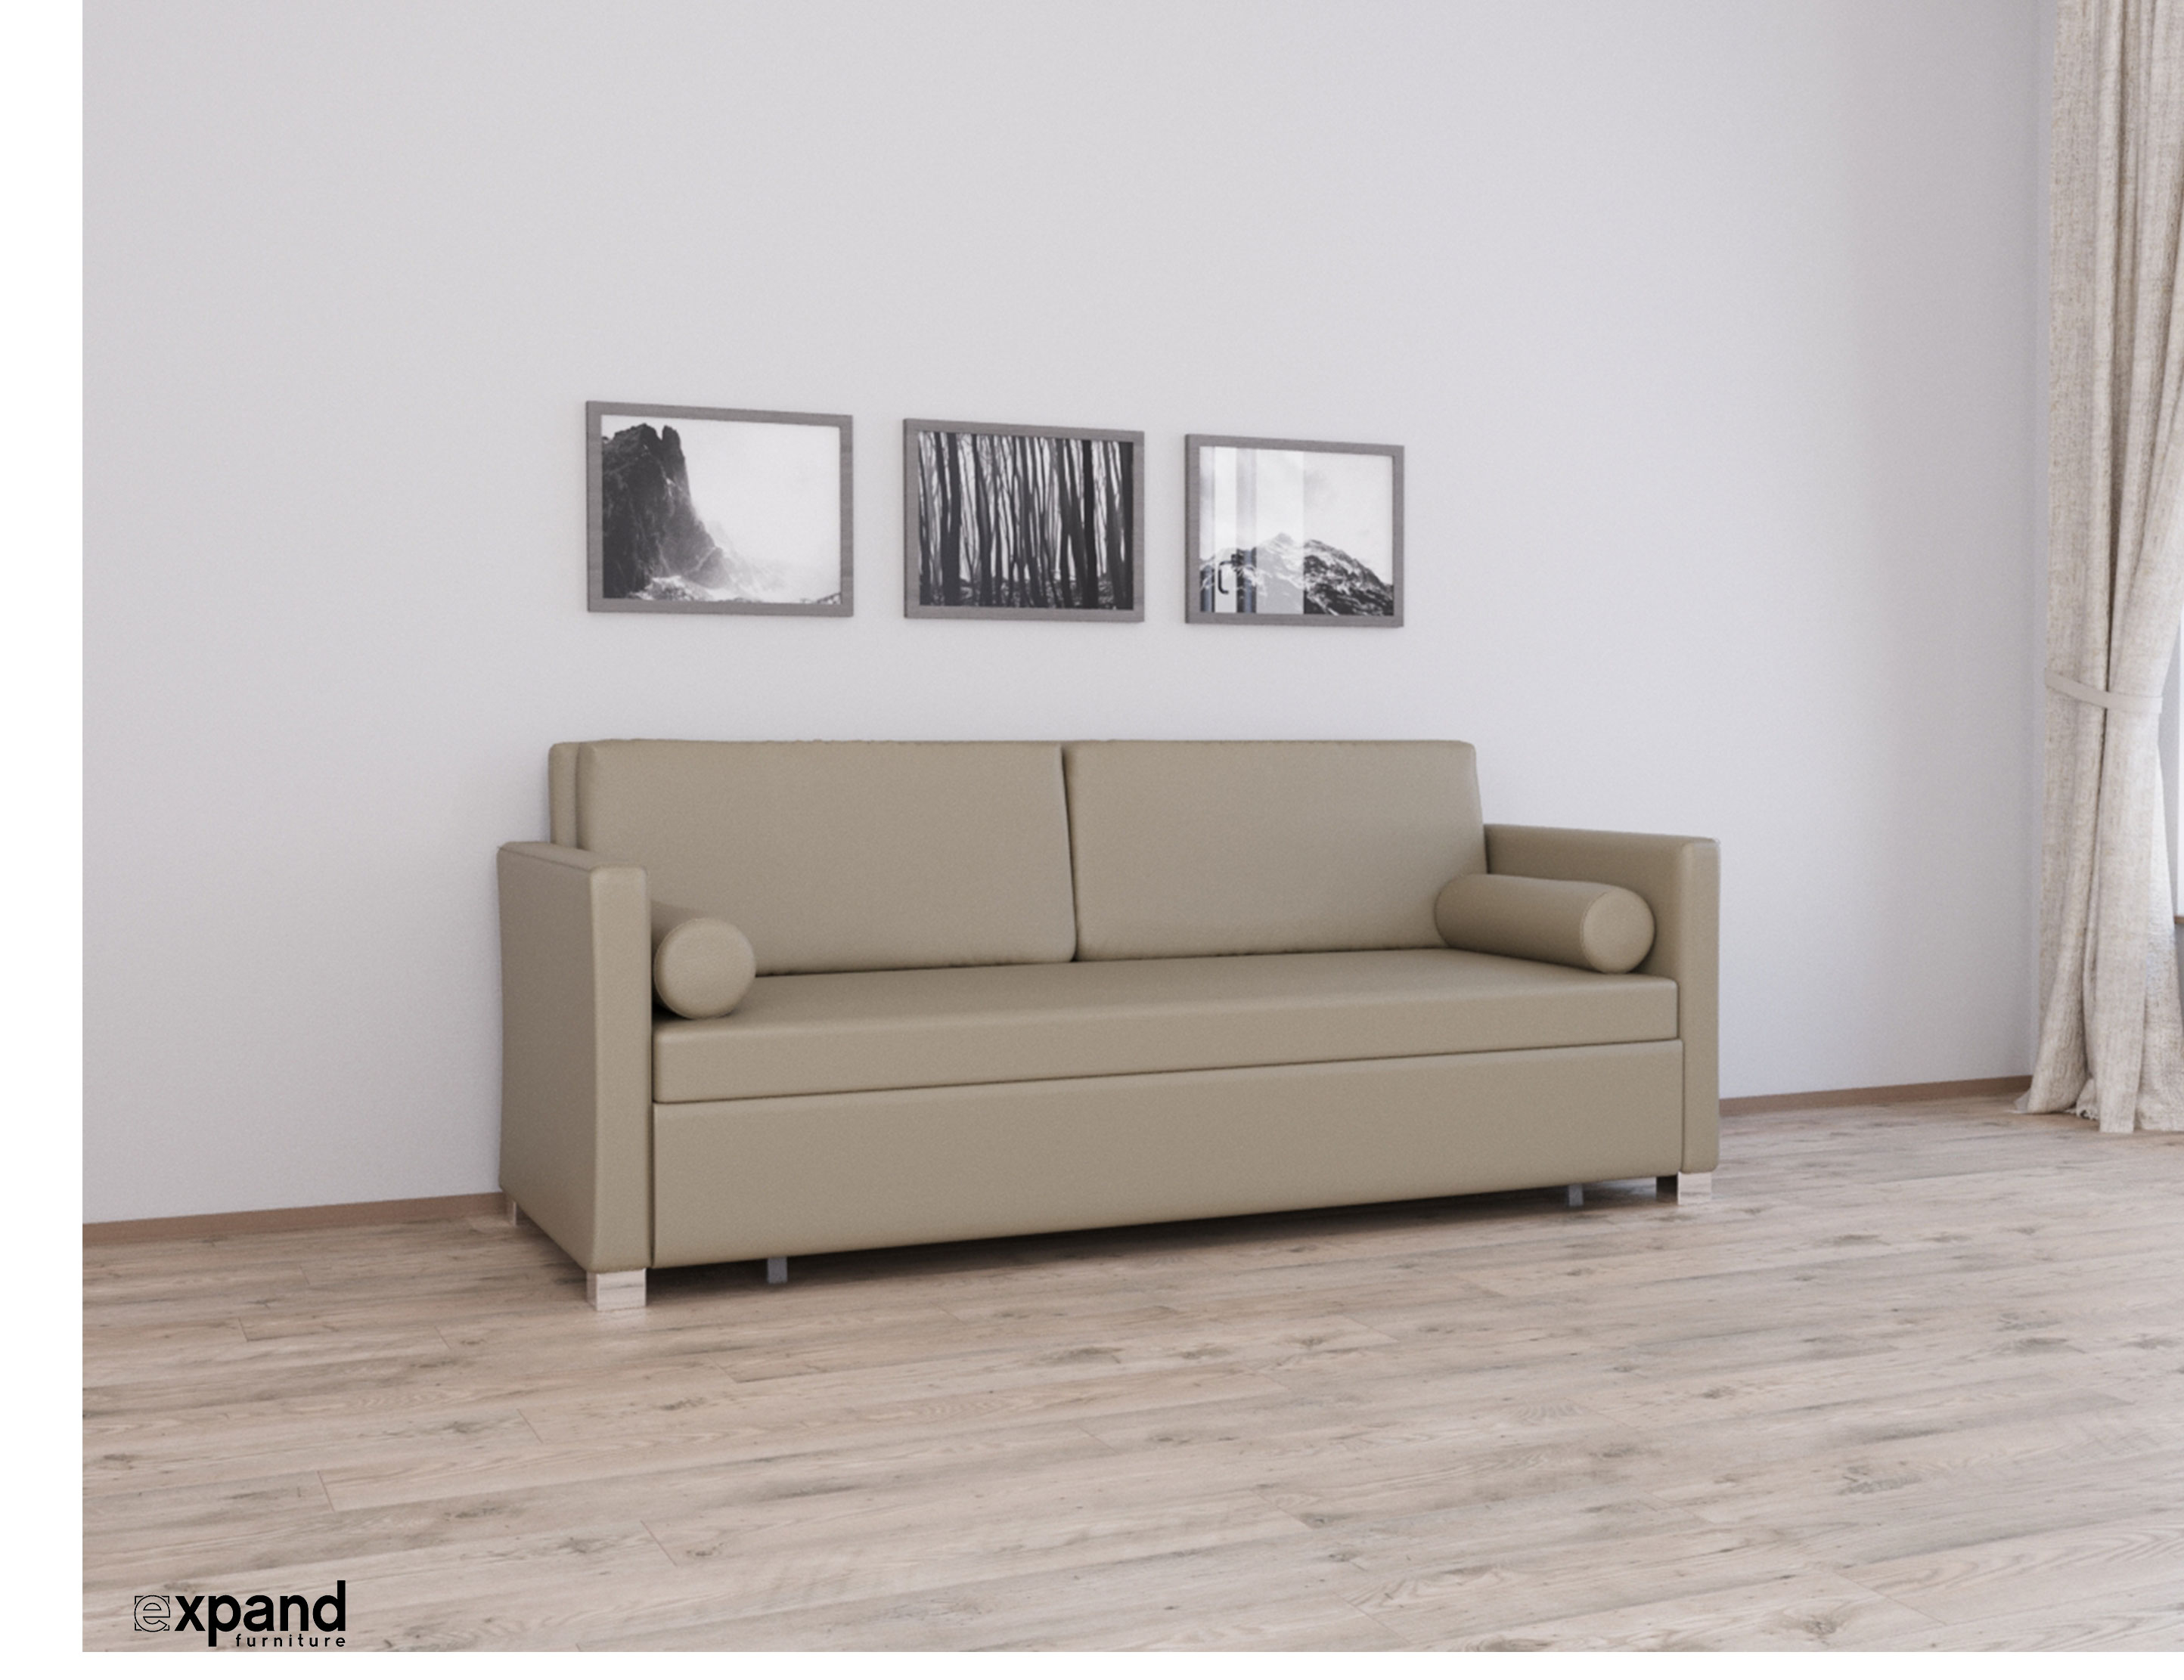 Harmony Sofa Bed Queen American Leather Eco Expand